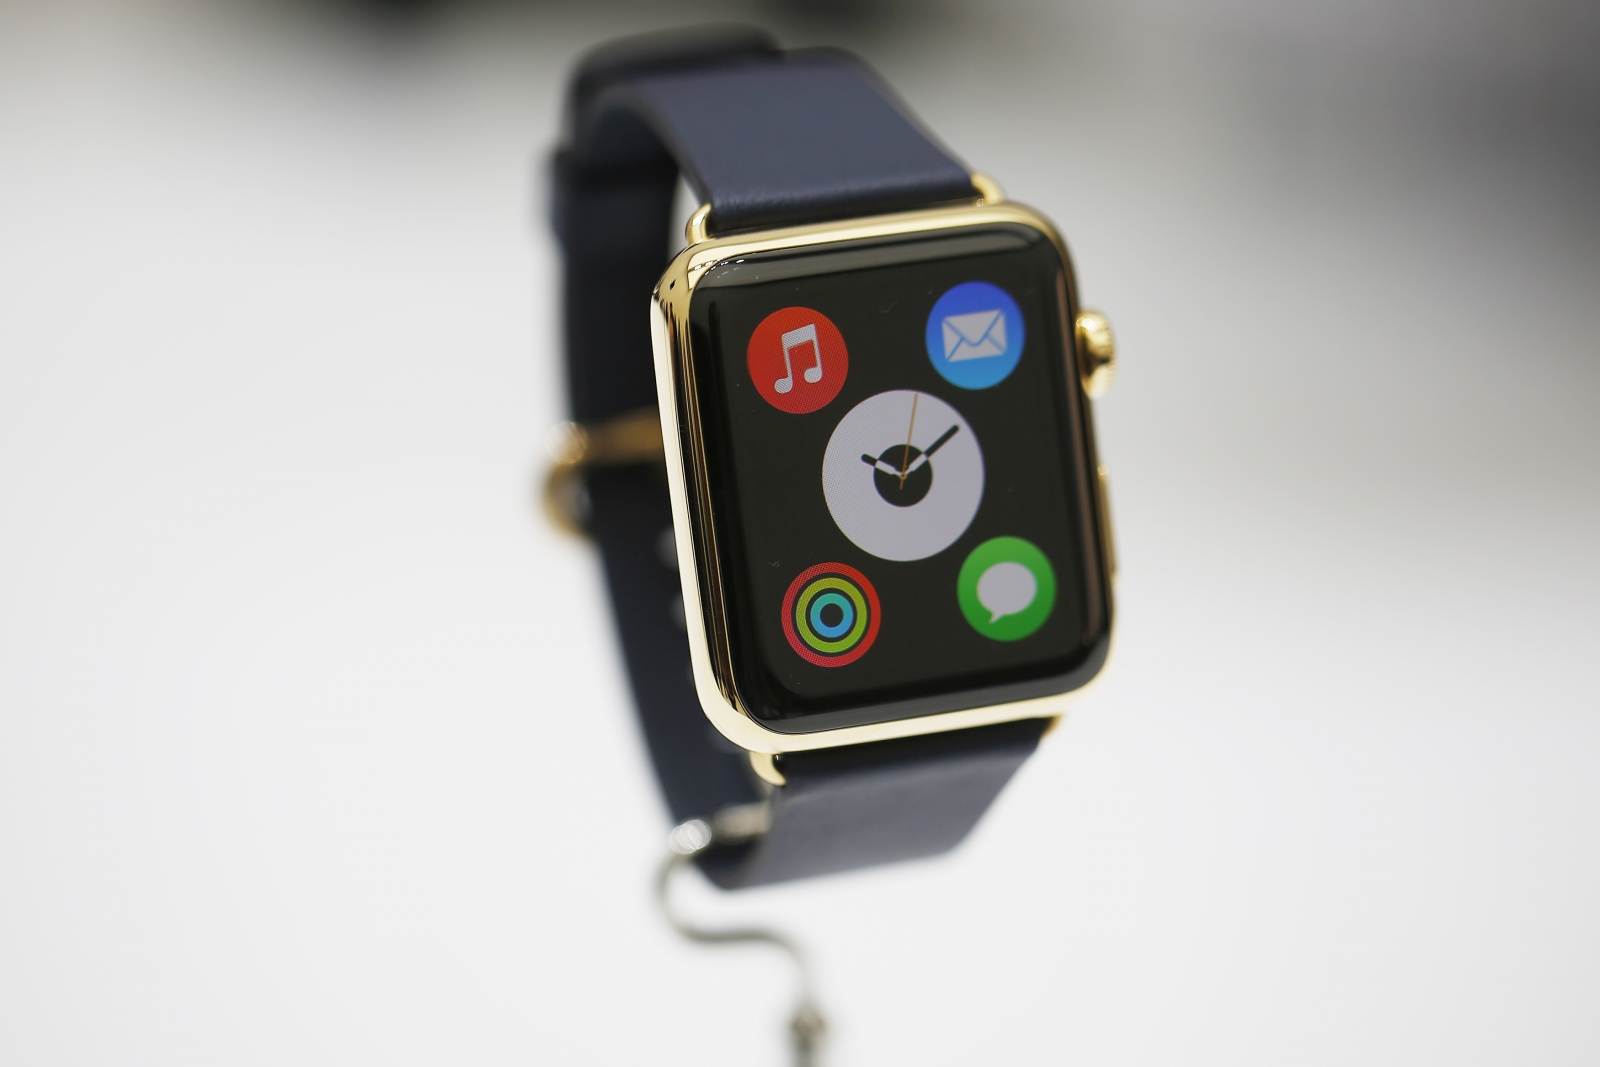 Tech Talk: Apple Watch Highlights Switch from Trend Setter to Market Follower